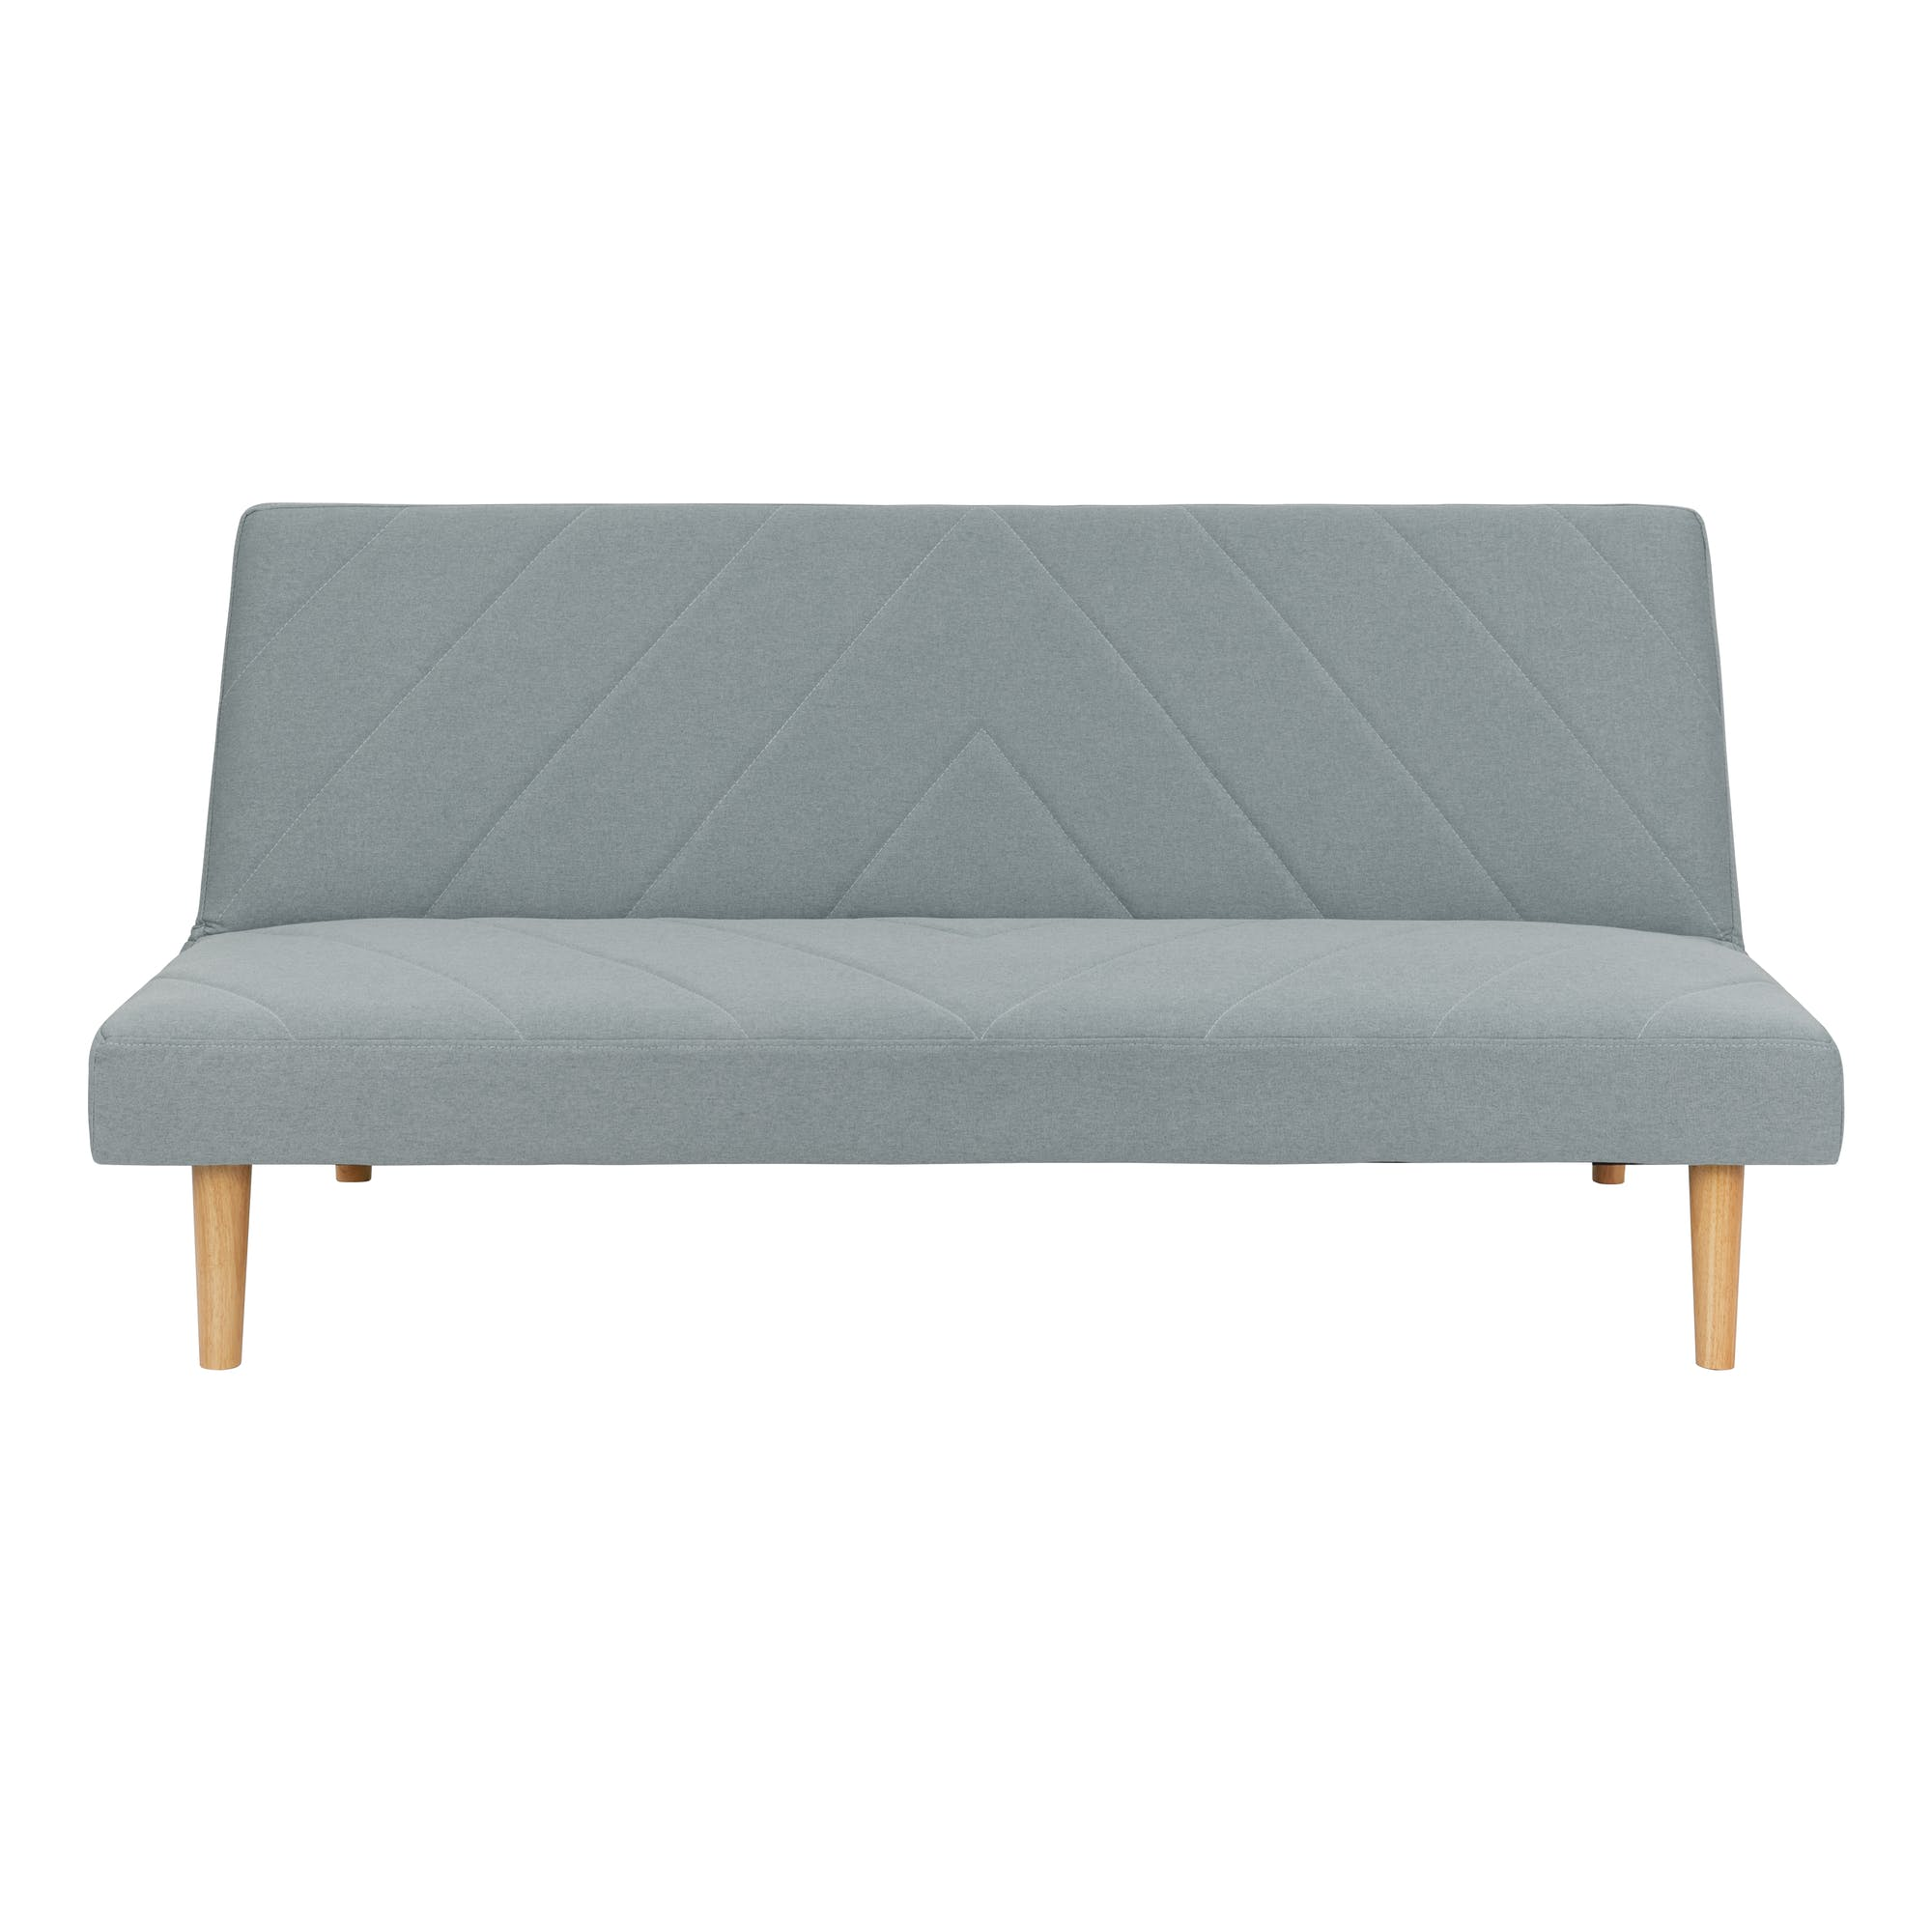 Affordable Sofa Beds Near Me